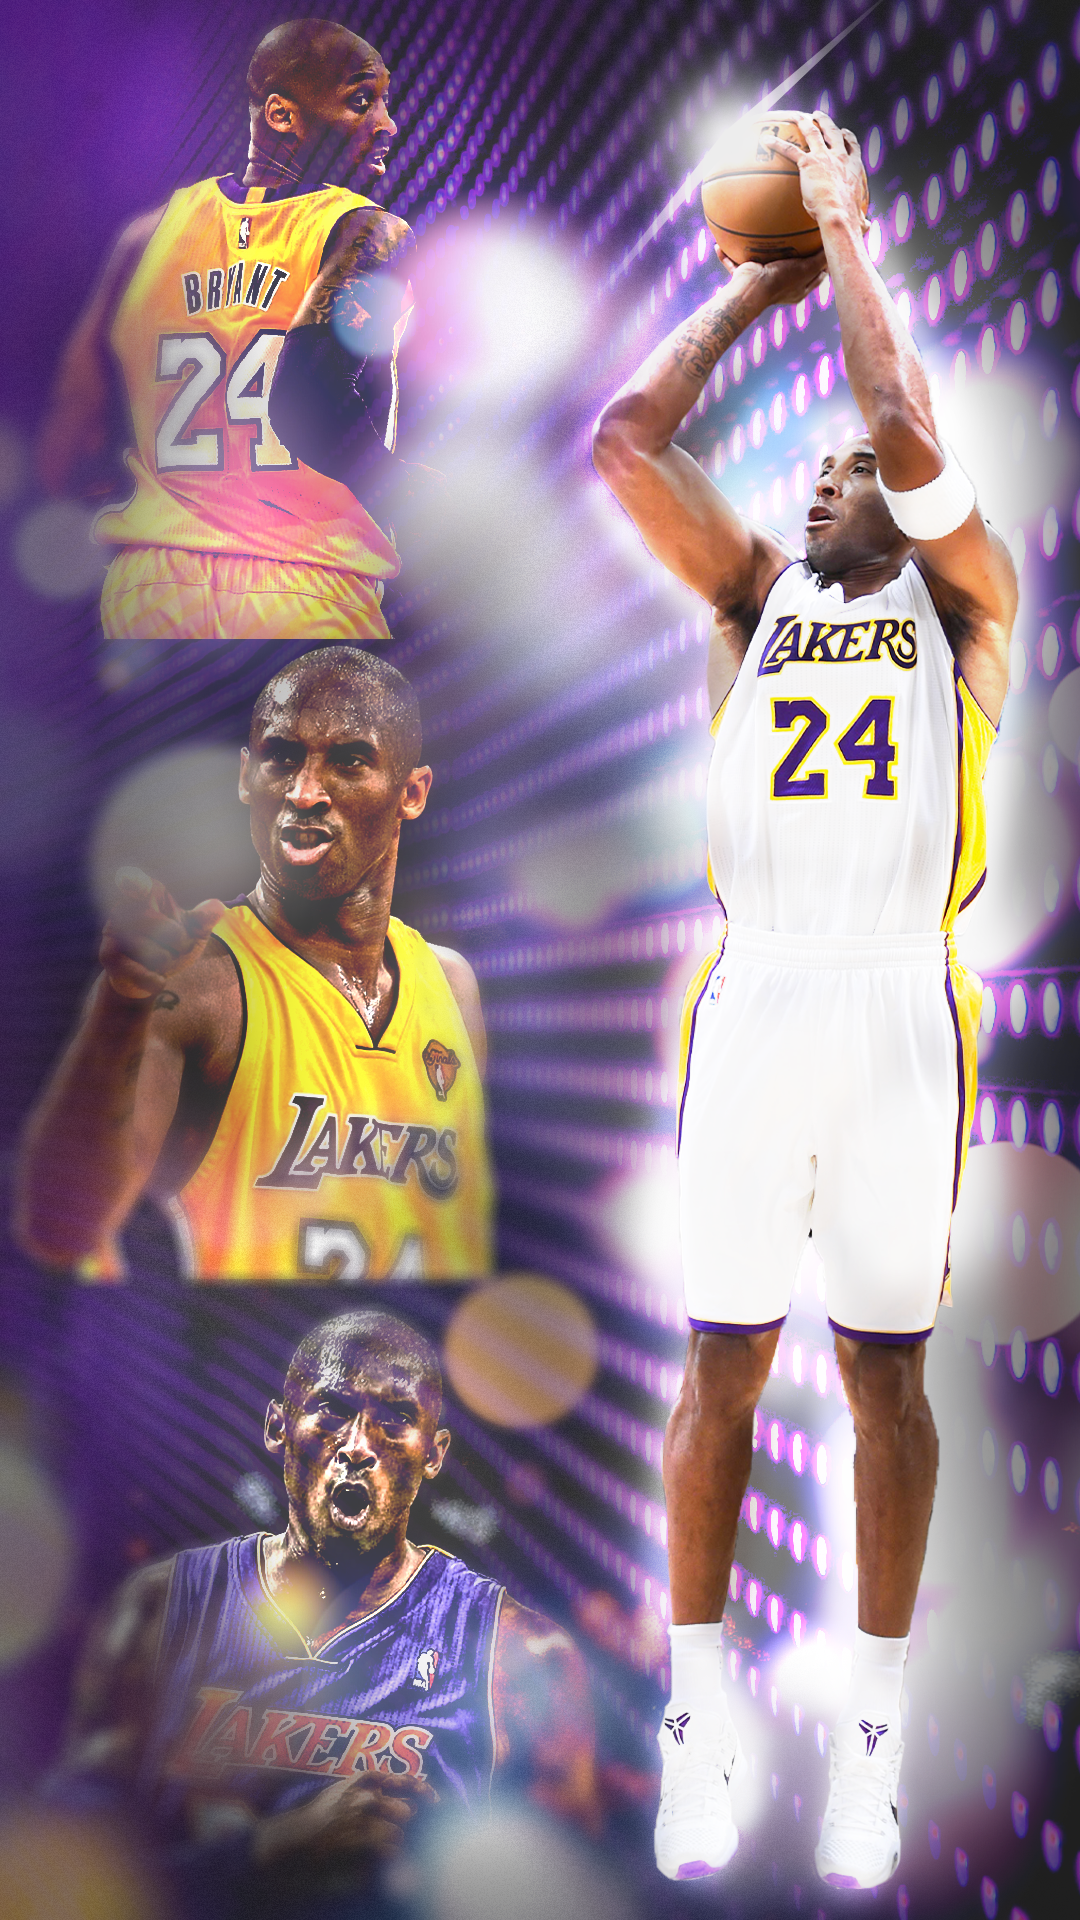 Wallpaper9_KobeBryant.png